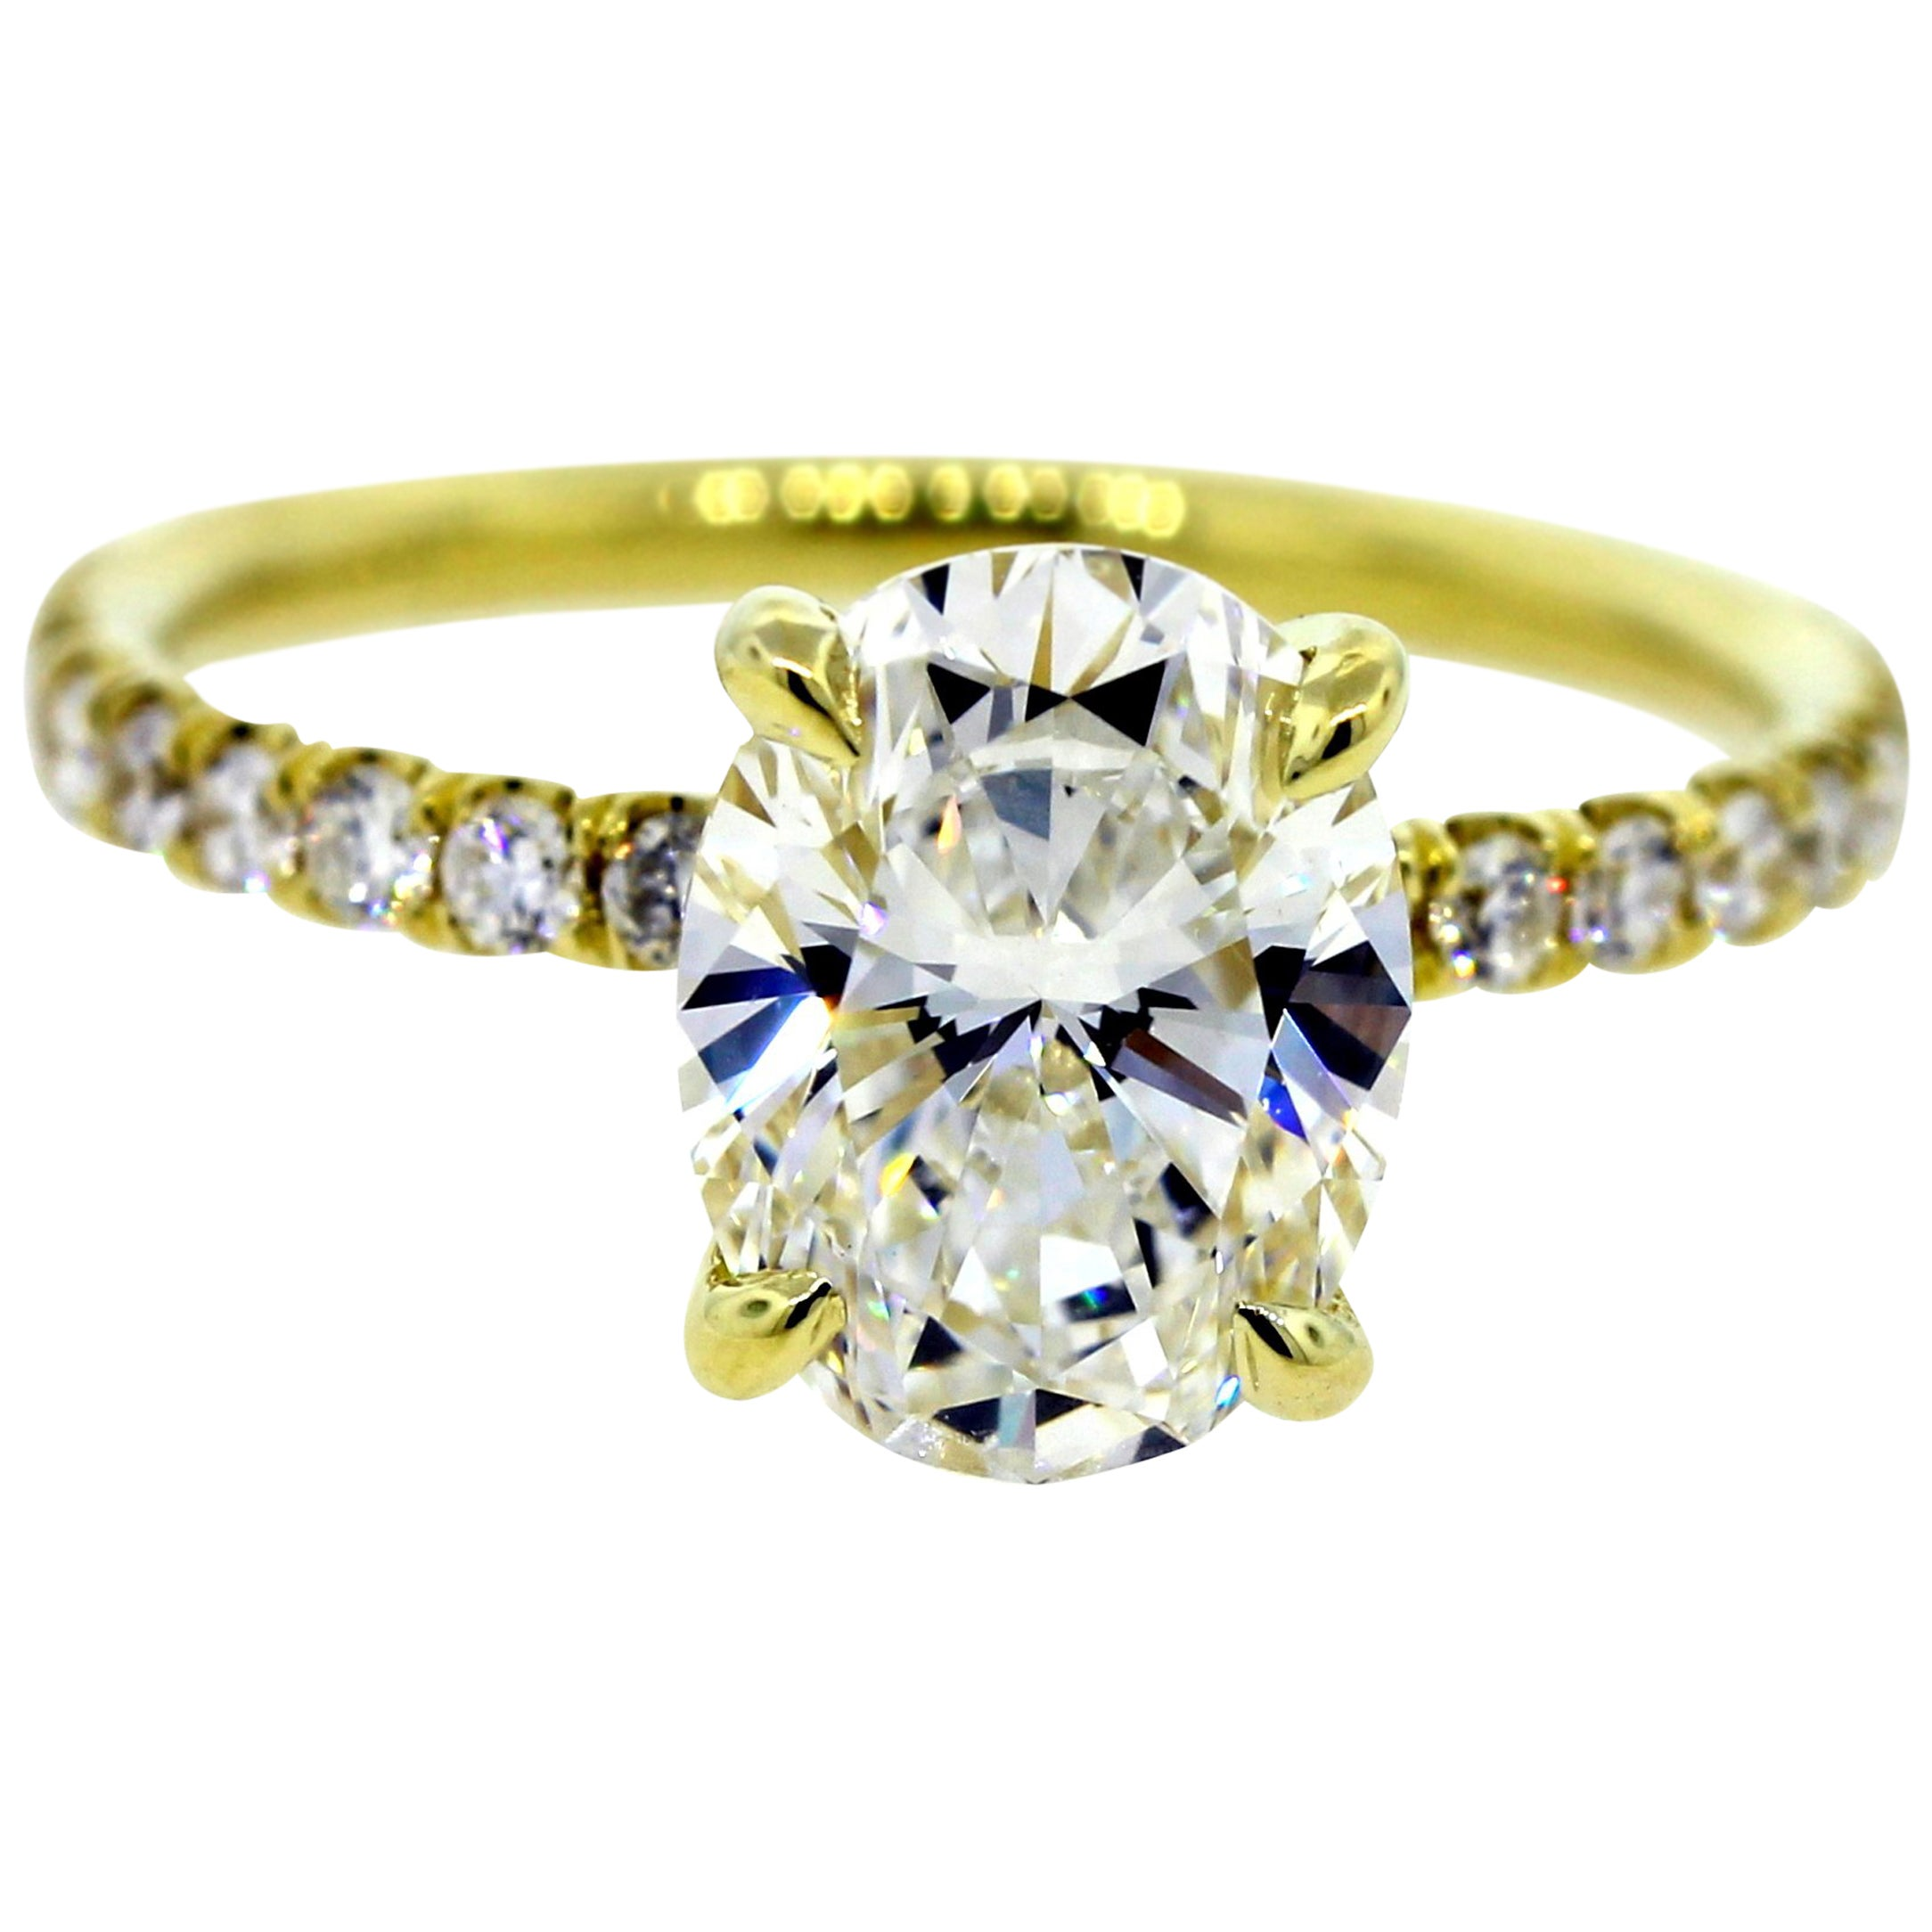 Oval Diamond Pave Engagement Ring 1.20 Carat GIA